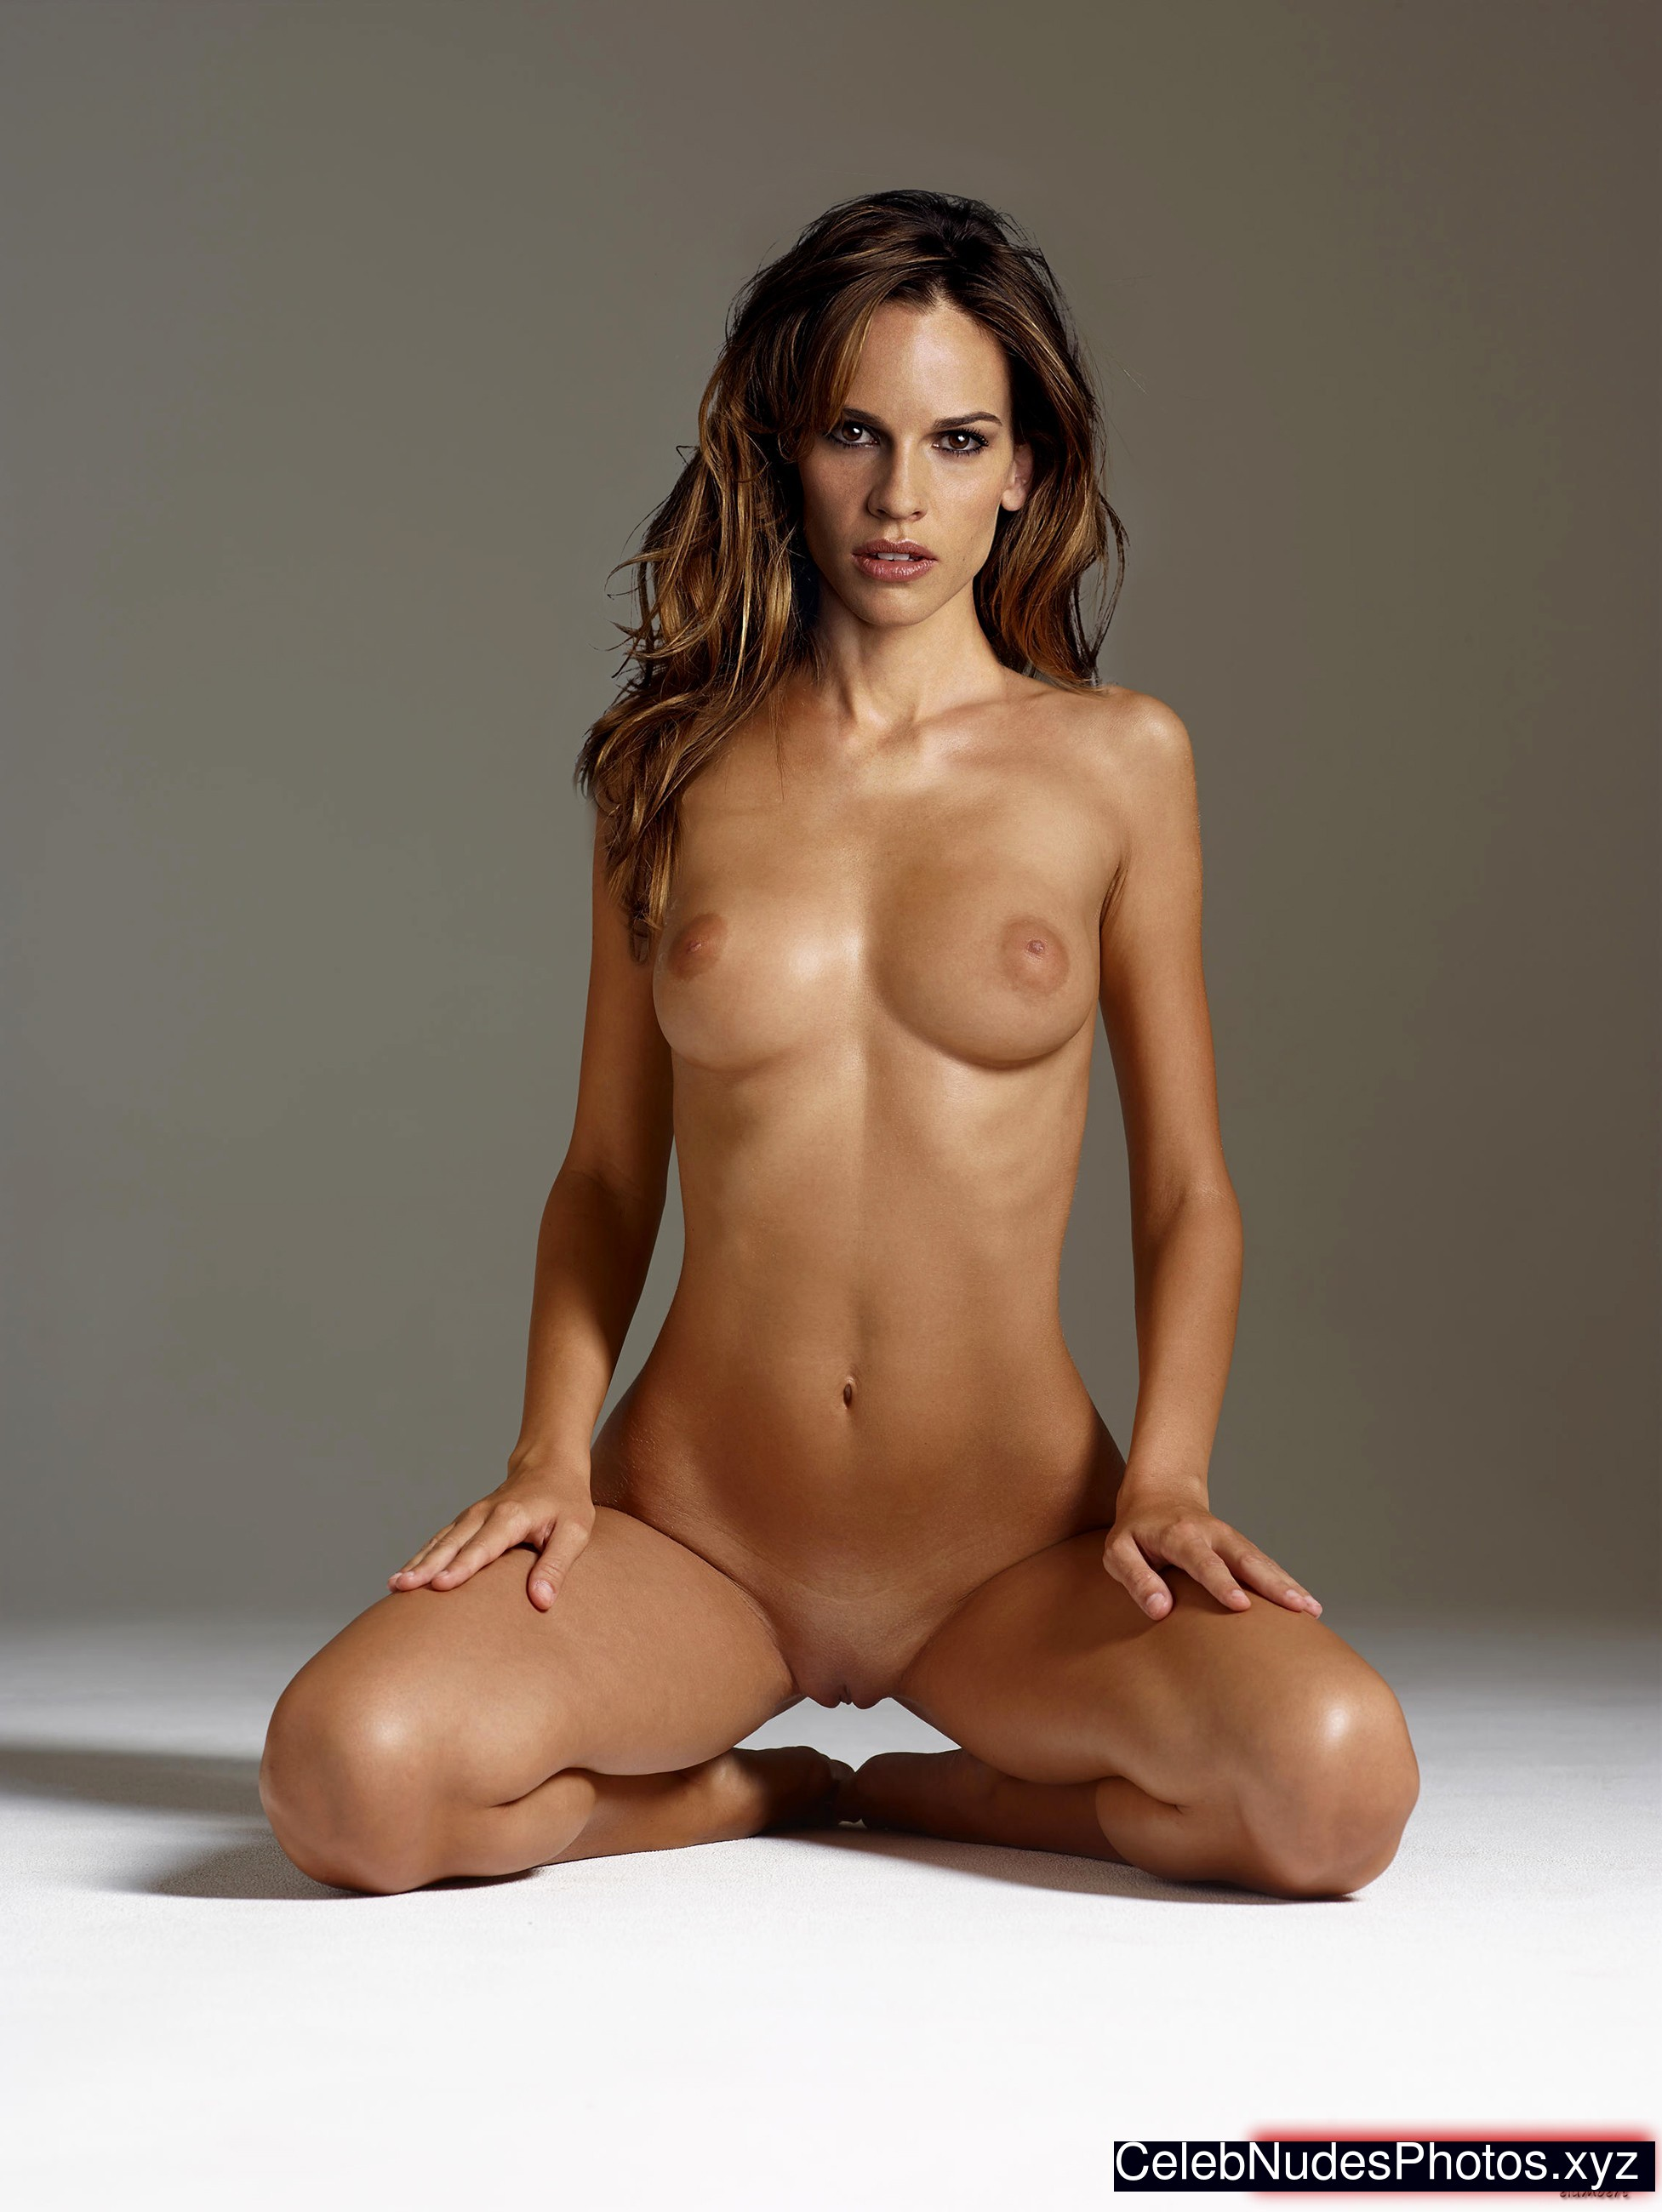 Hilary swank naked